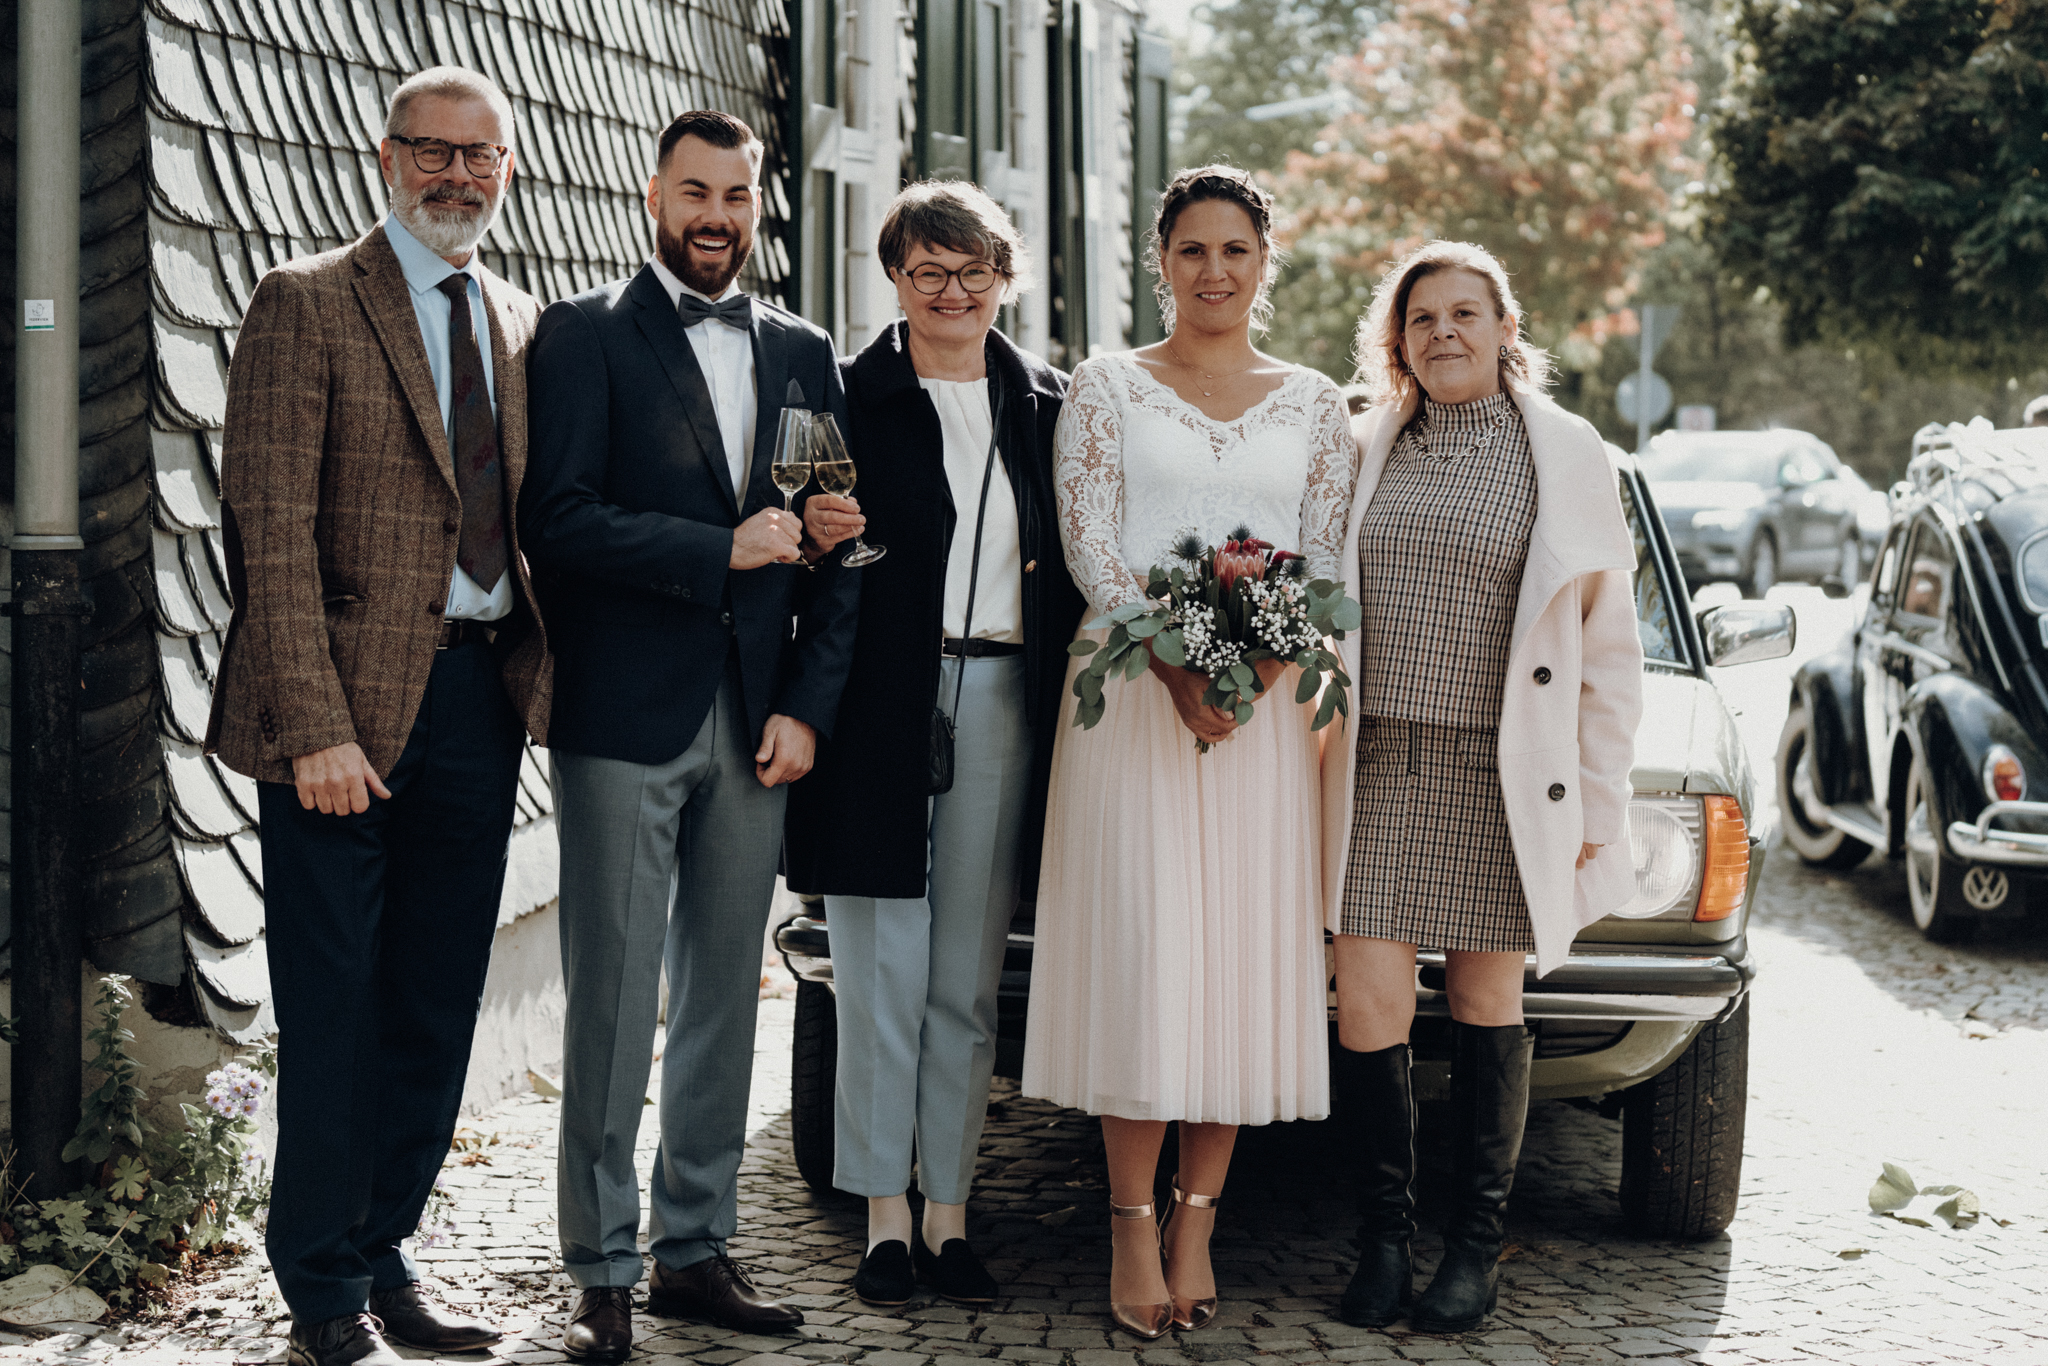 Laetitia & Christopher – emotionale Hochzeit in Wermelskirchen